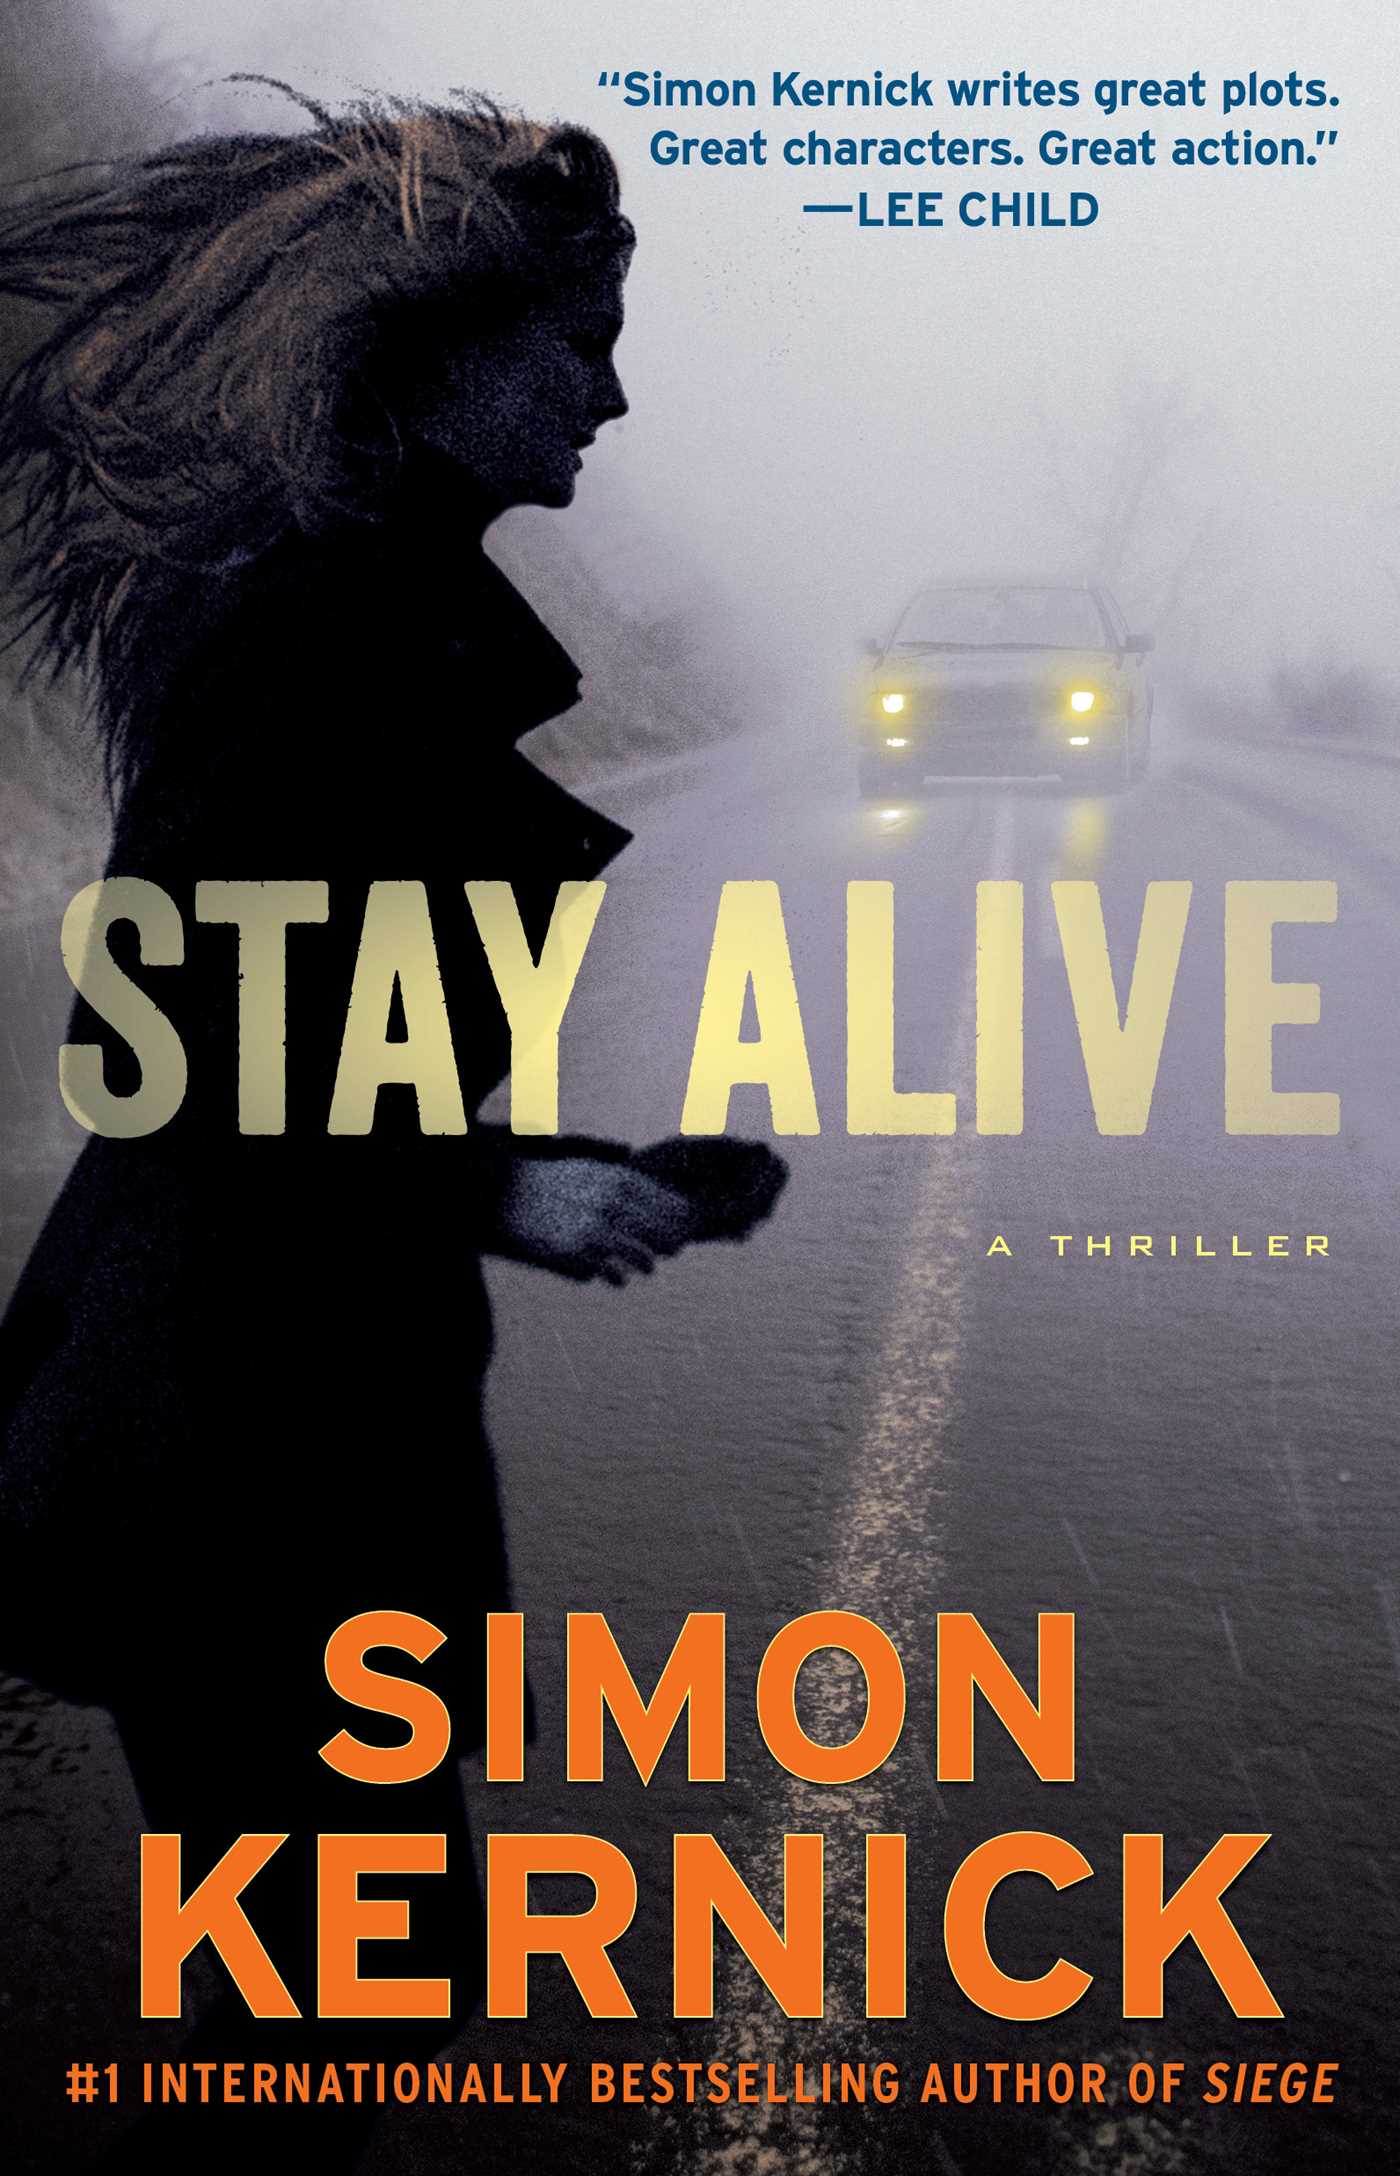 Stay-alive-9781476789583_hr